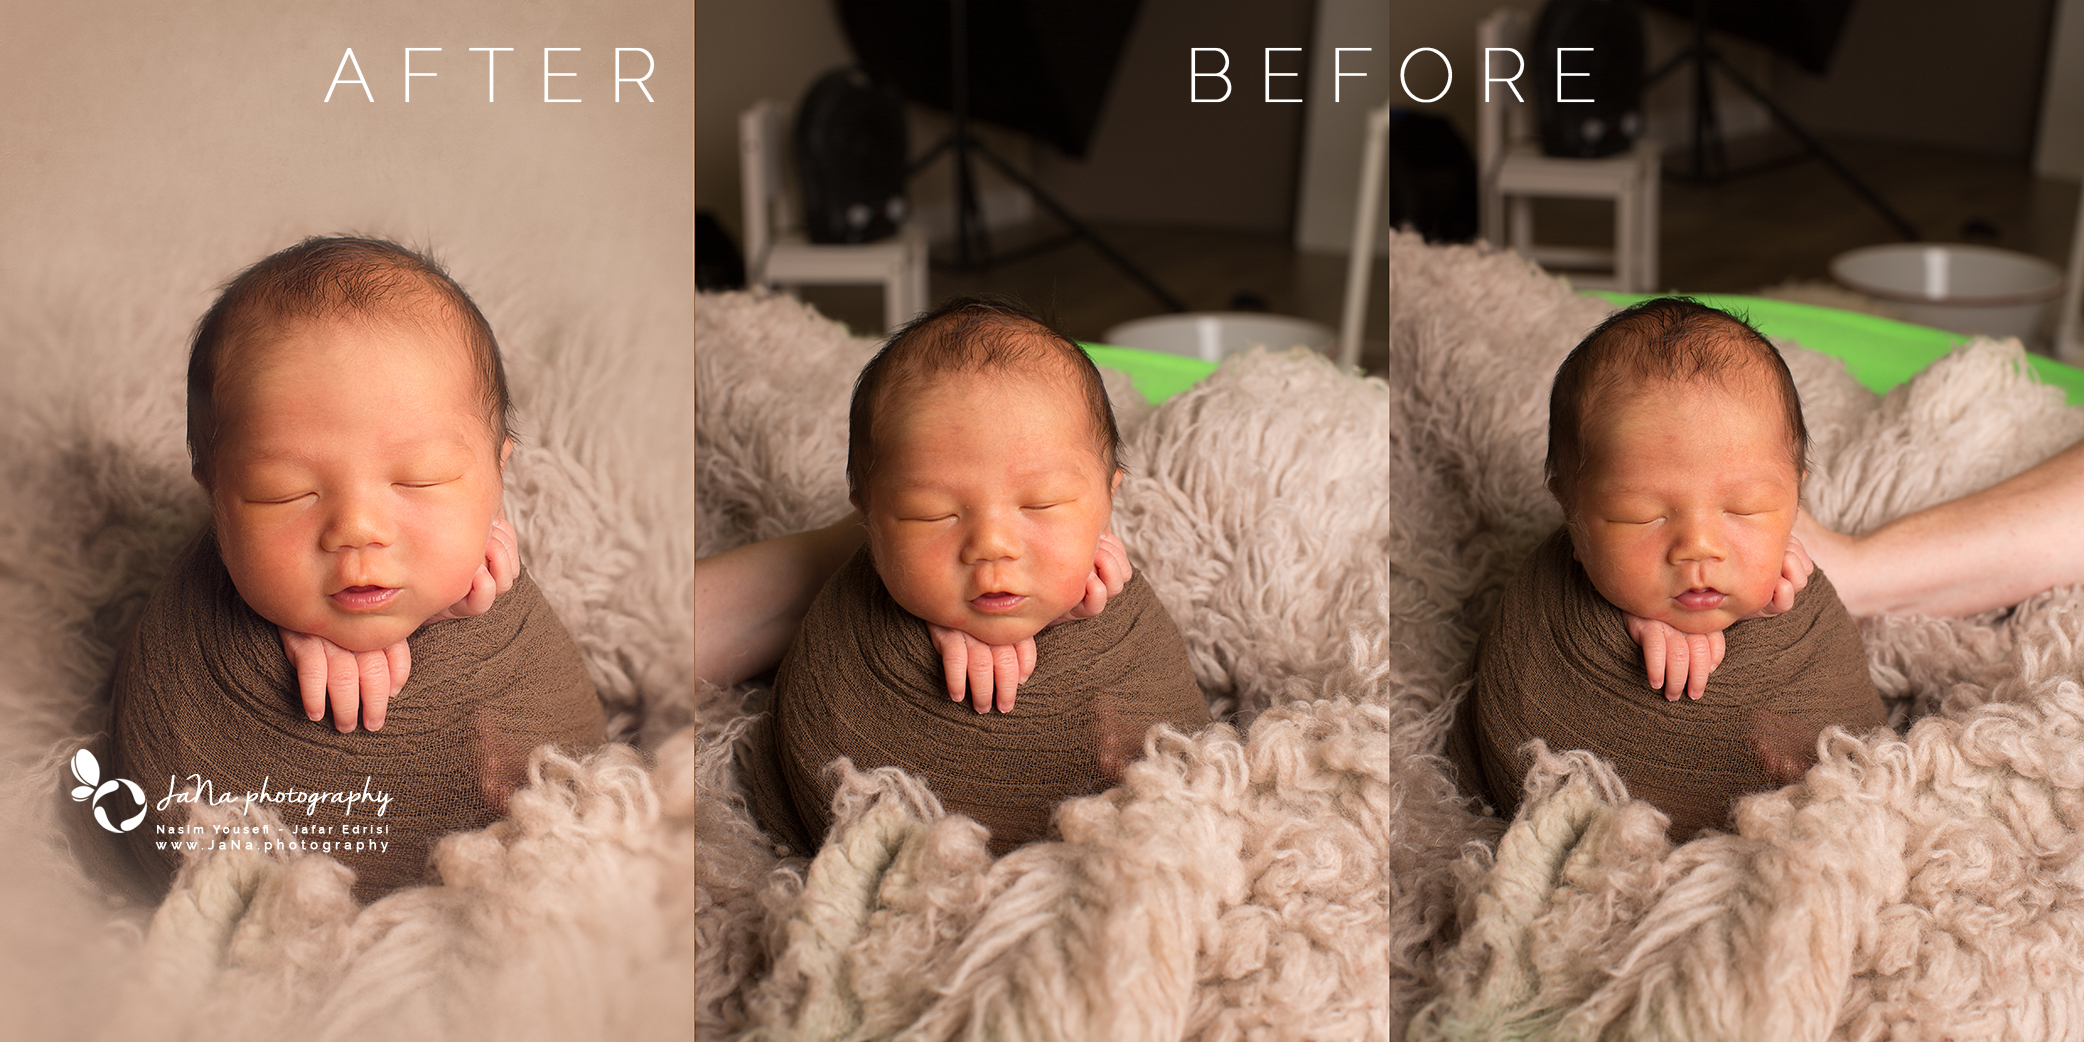 Newborn photo editor job posting | Vancouver